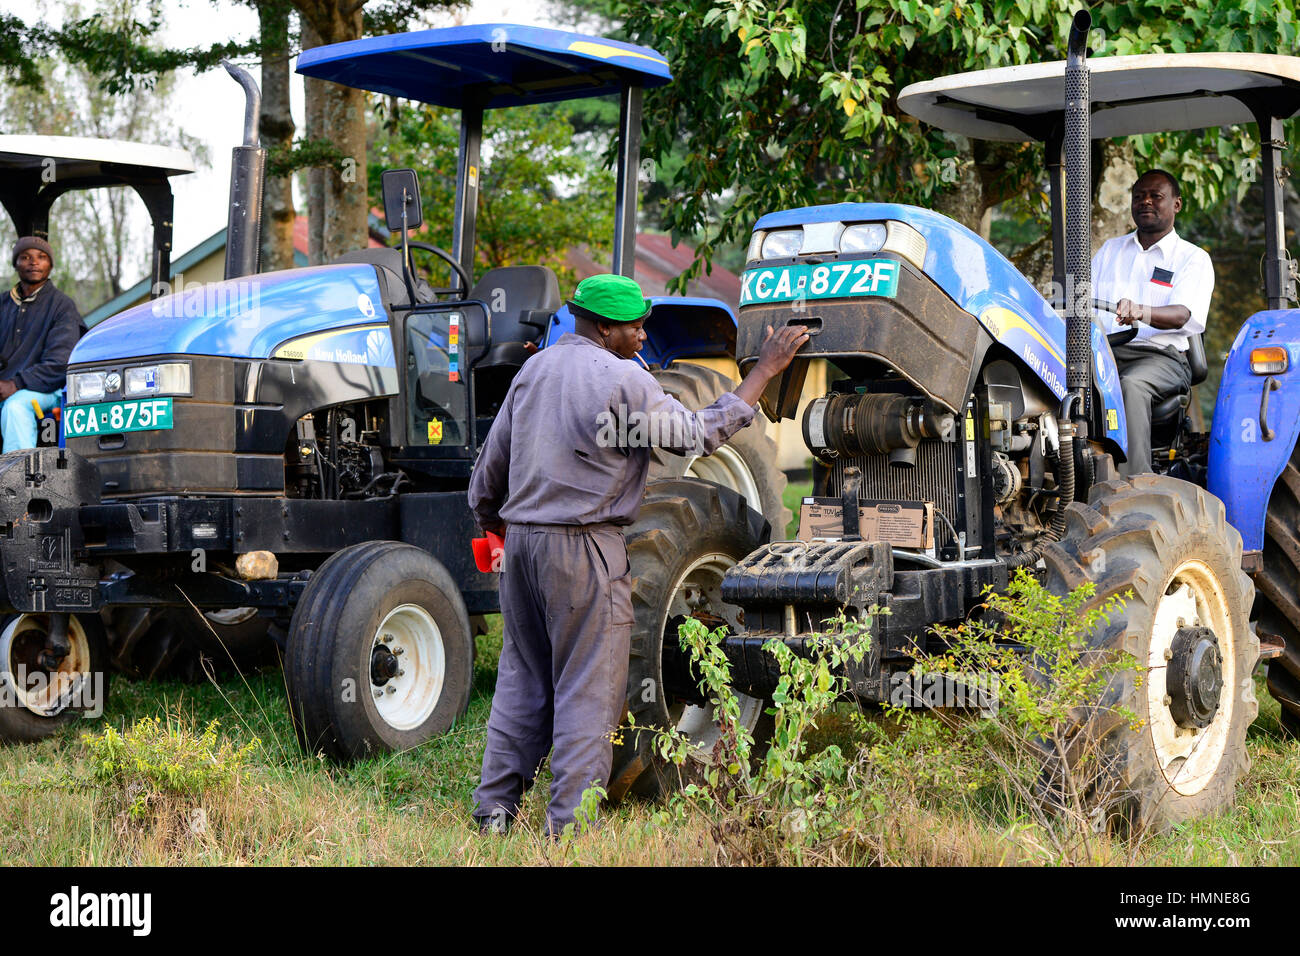 KENYA, County Kakamega, Bukura, ATDC Agricultural Technology Development Center, New Holland tractor / KENIA, ATDC - Stock Image